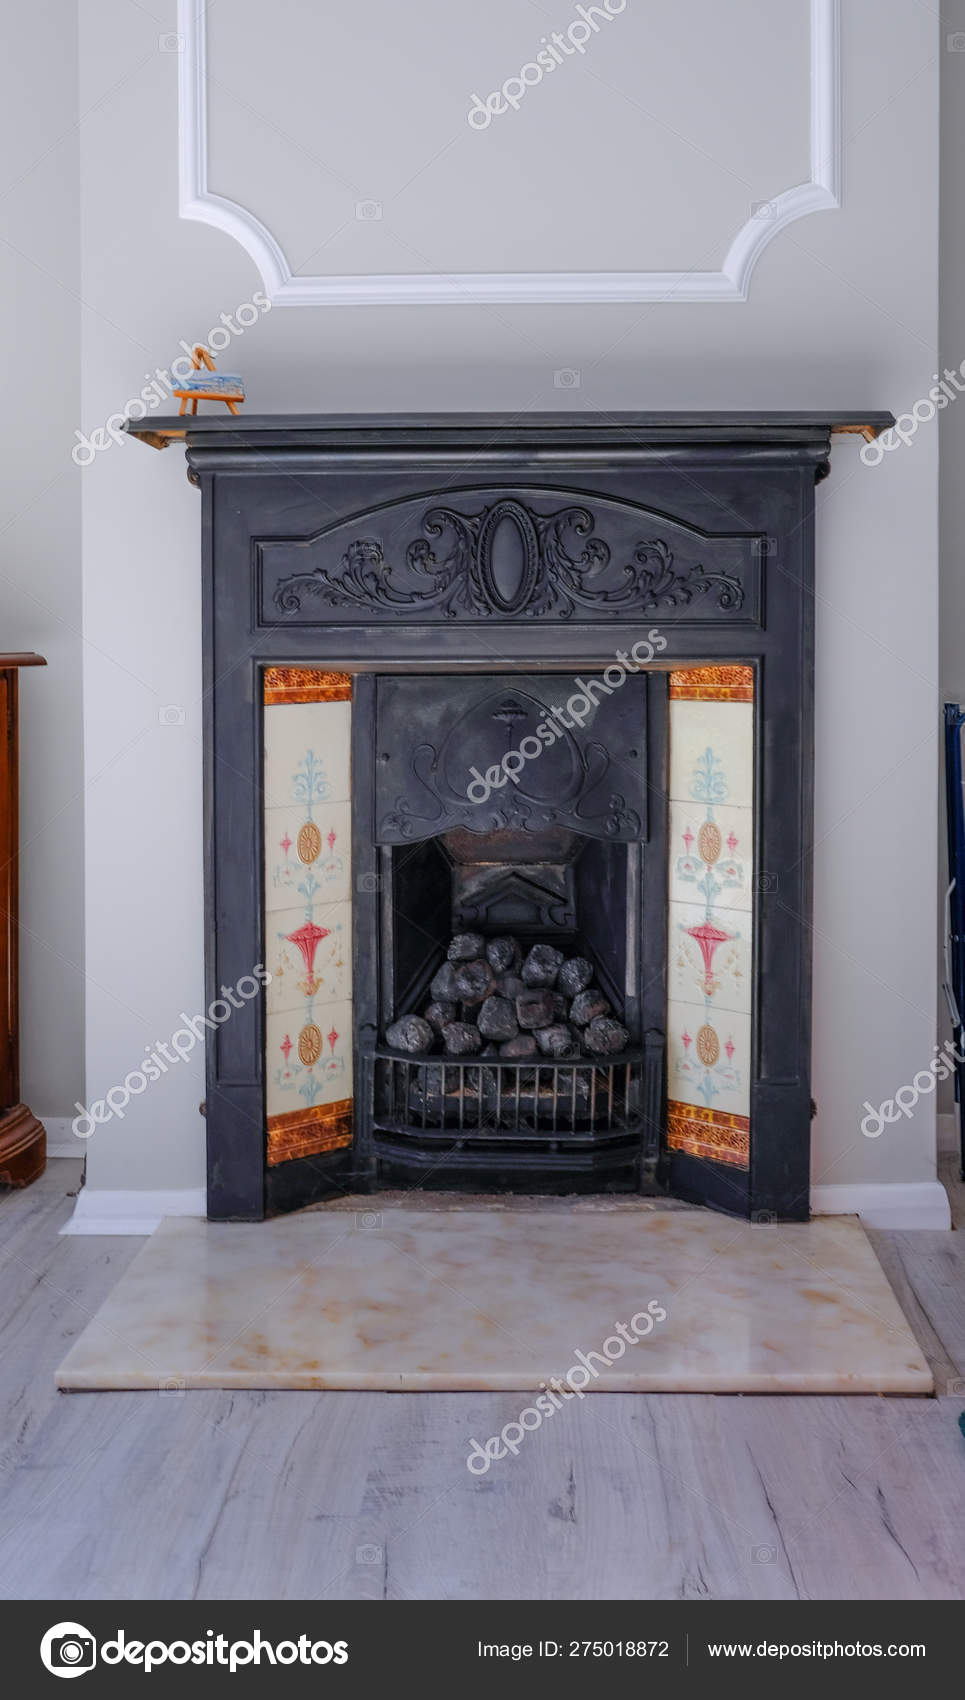 Black Cast Iron Victorian Fireplace Traditional Tiles Marble Hearth Portrait Stock Photo C Jean Cuomo 275018872